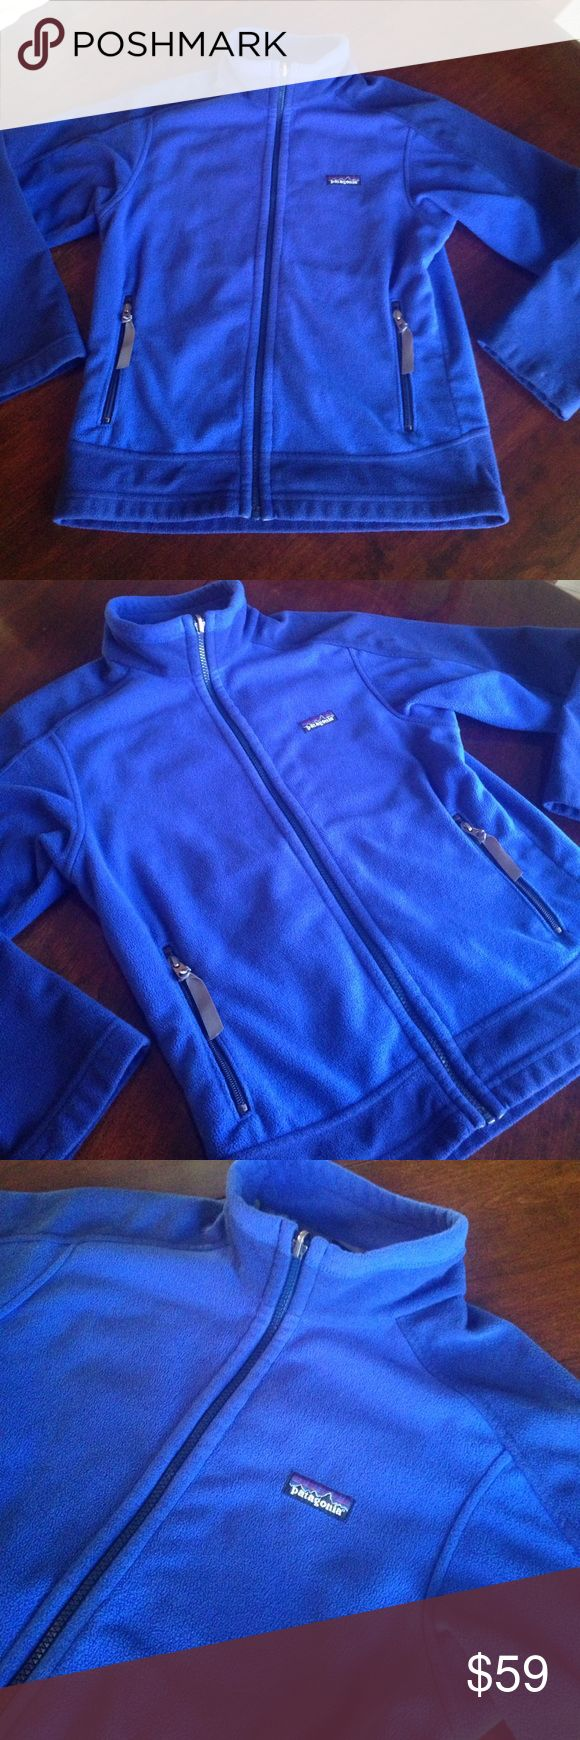 Patagonia Blue Zip Up Fleece Jacket. Size 8. This Patagonia Blue and dark blue zip Up Fleece jacket is gorgeous! It is in excellent, pre-owned condition and is a size 8. Patagonia Jackets & Coats